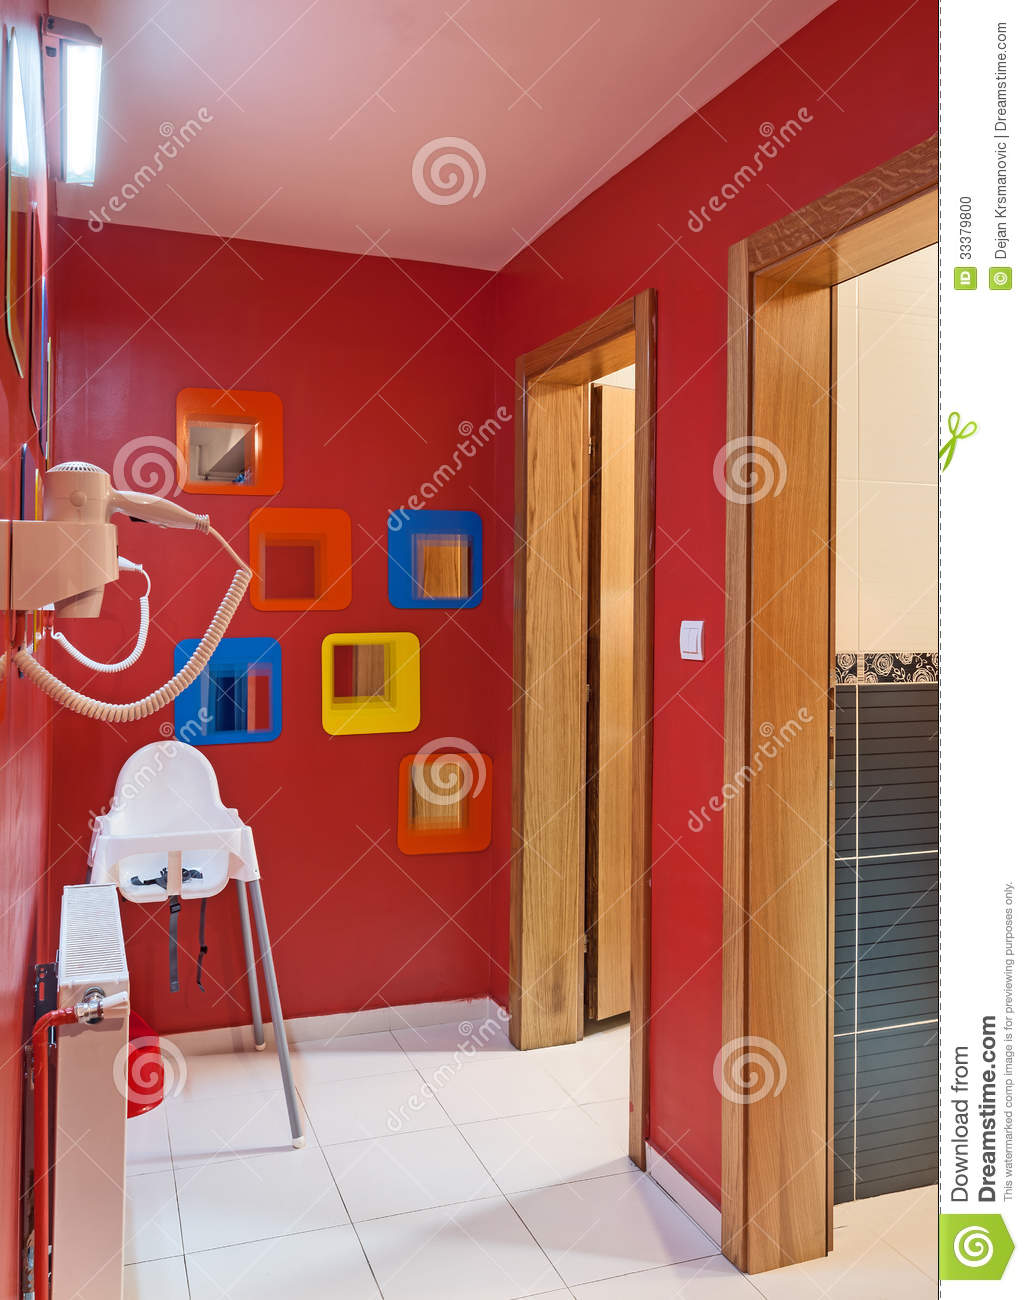 Kindergarten Toilets Stock Photo Image 33379800